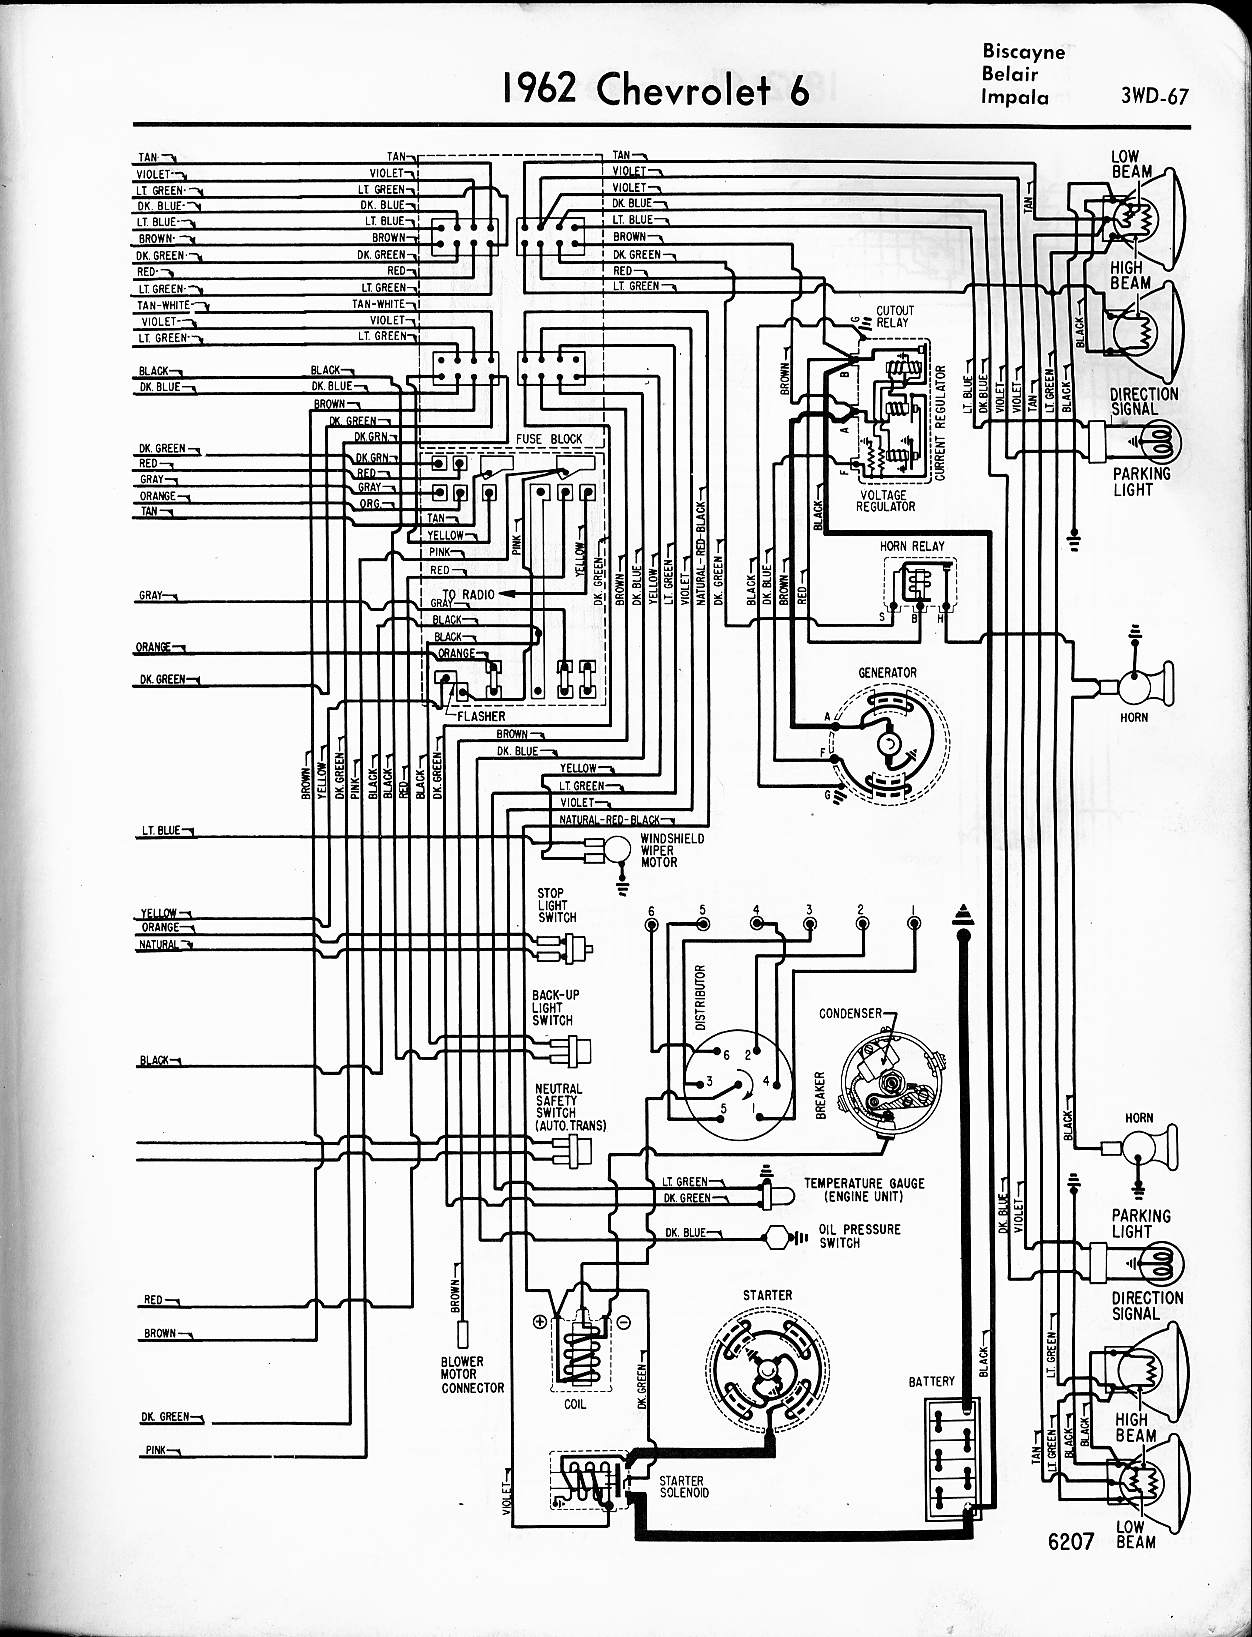 1966 chevy impala starter diagram  1966  free engine image for user manual download